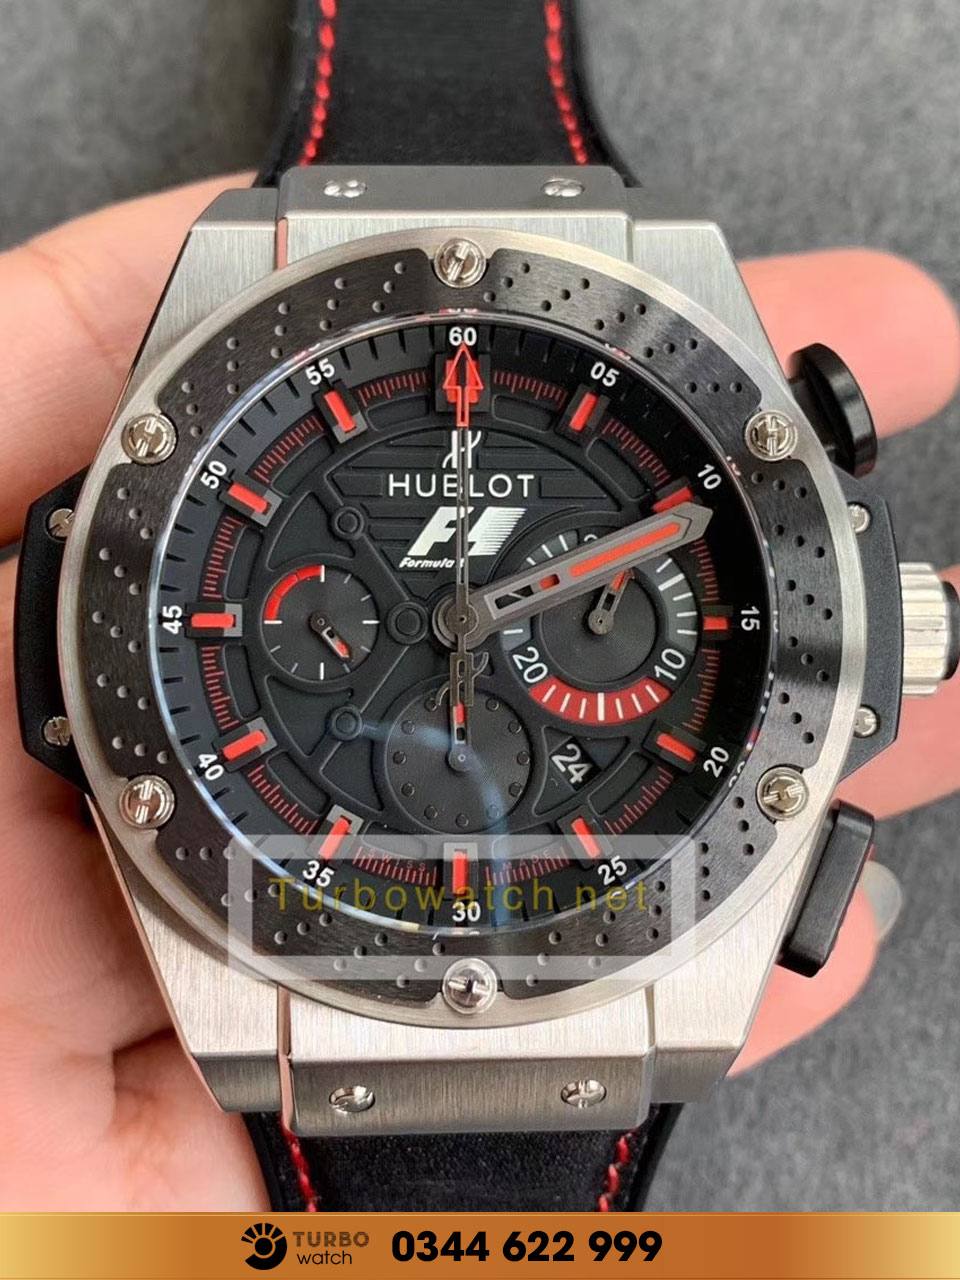 Hublot king power f1 zirconium replica 1:1 cao cấp